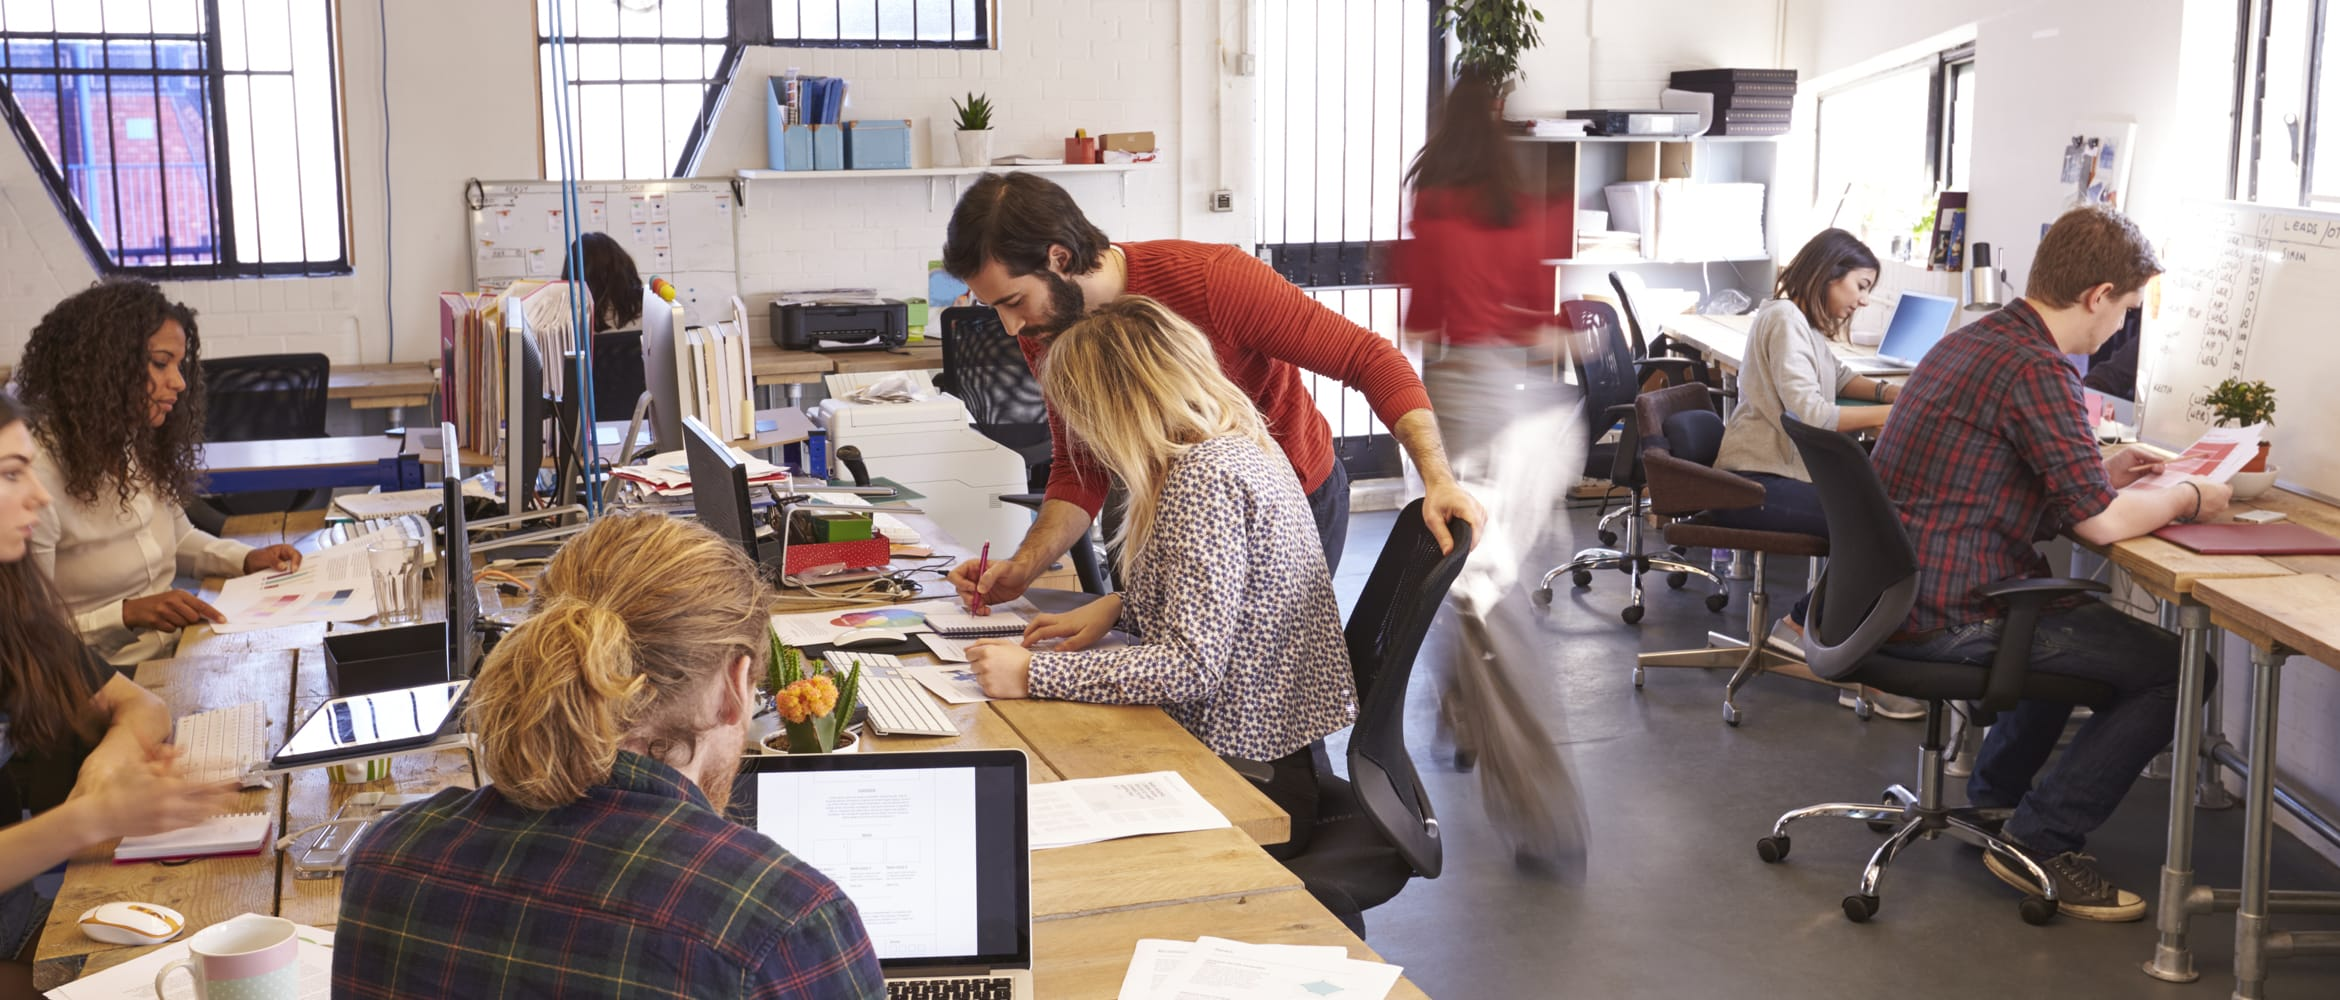 Employees in an SMB office